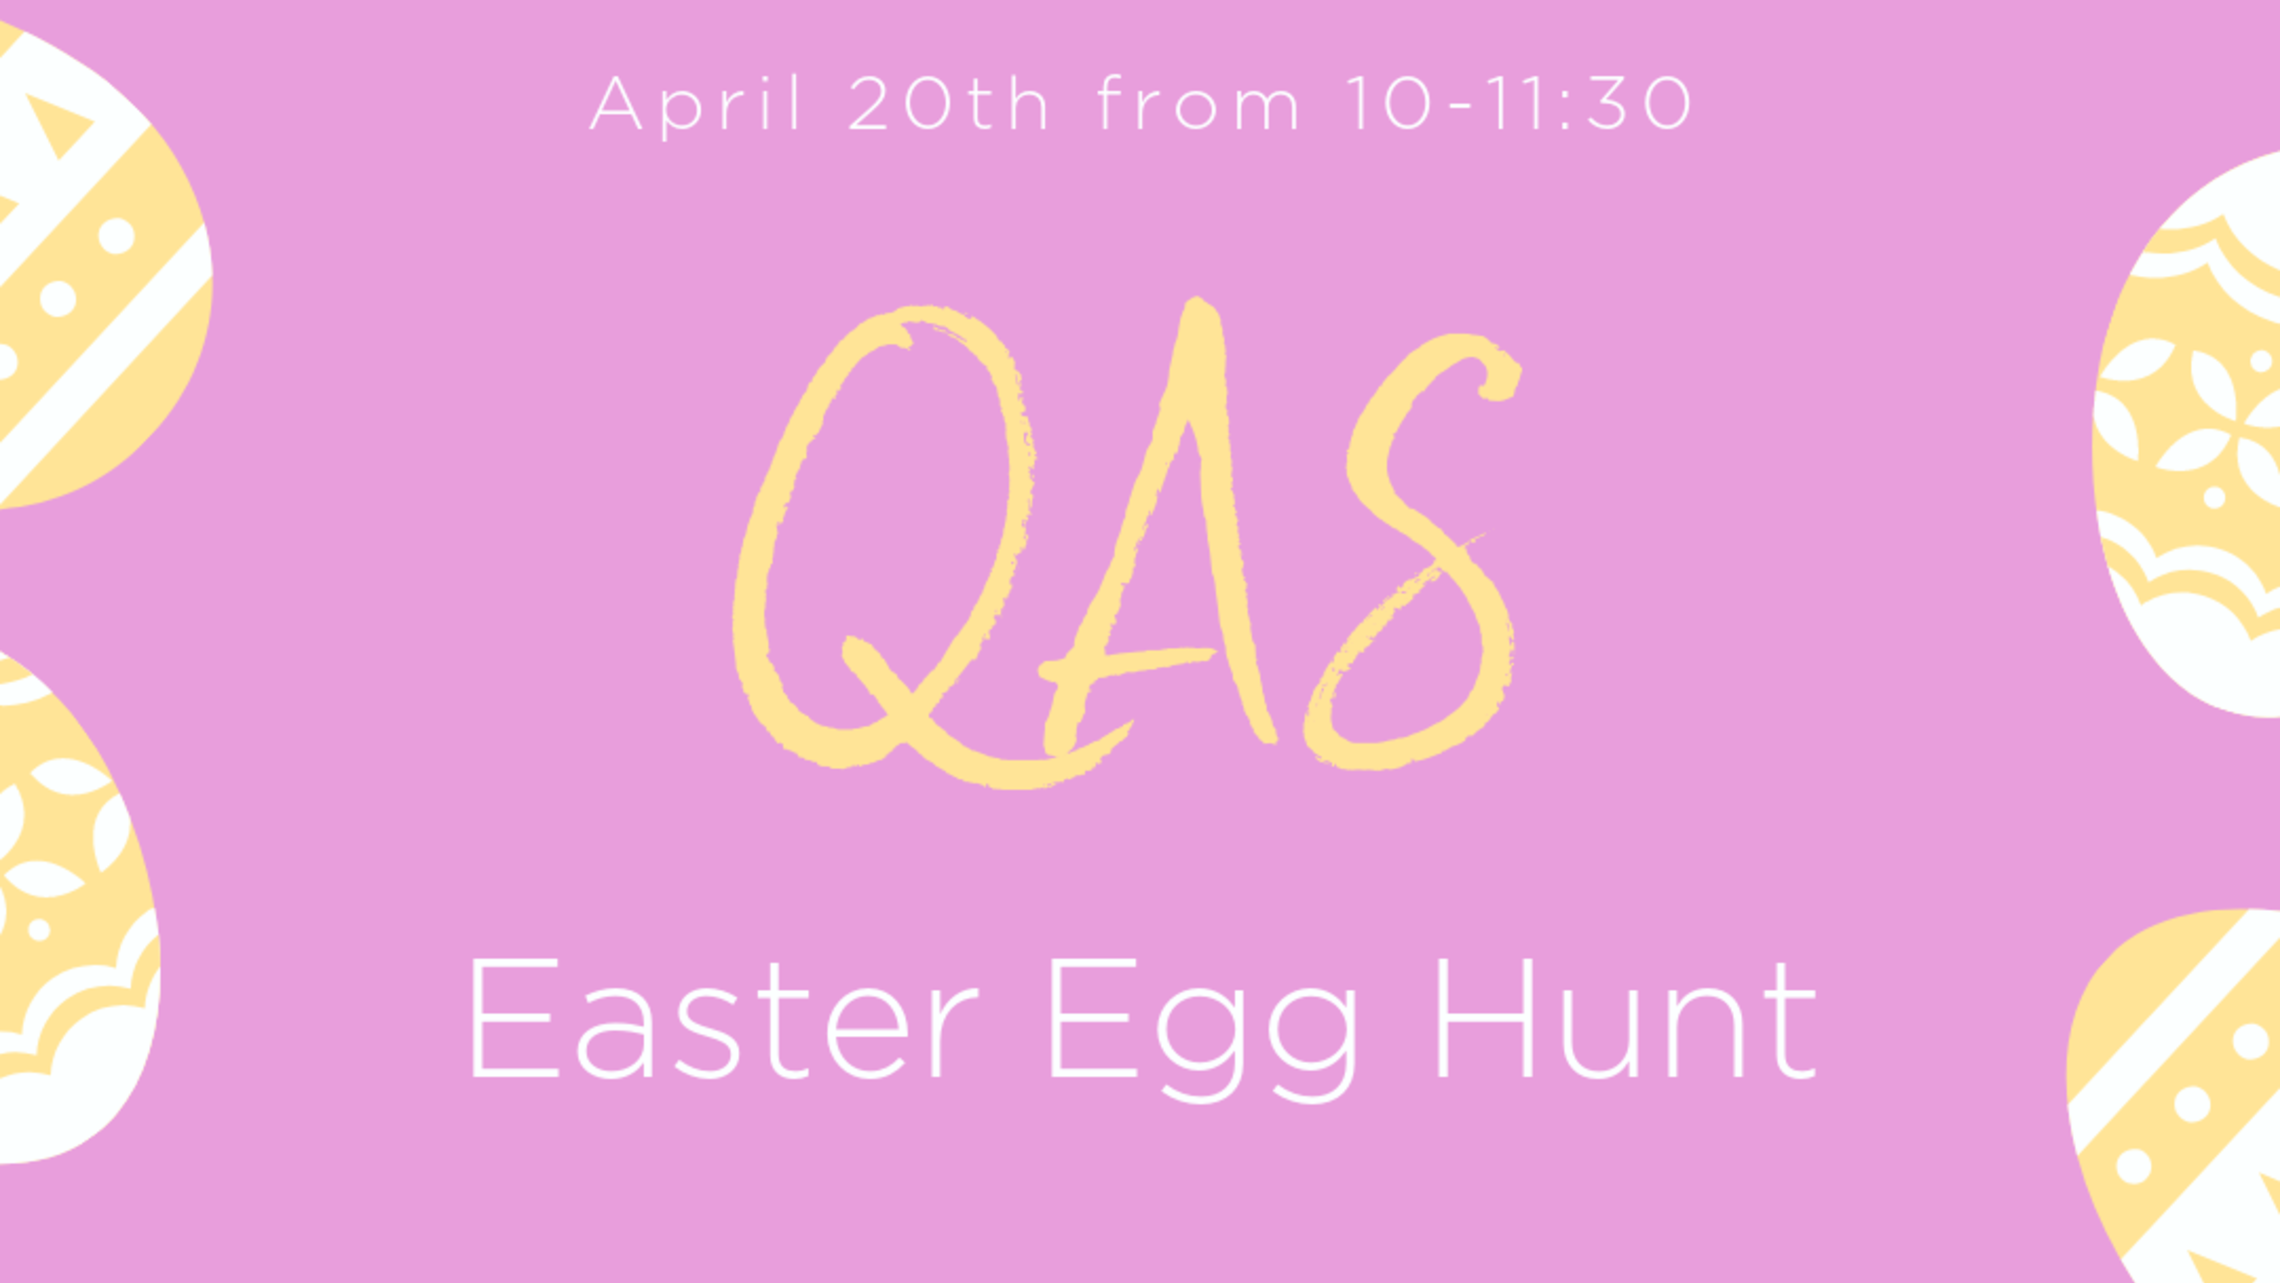 Annual Qas Easter Egg Hunt